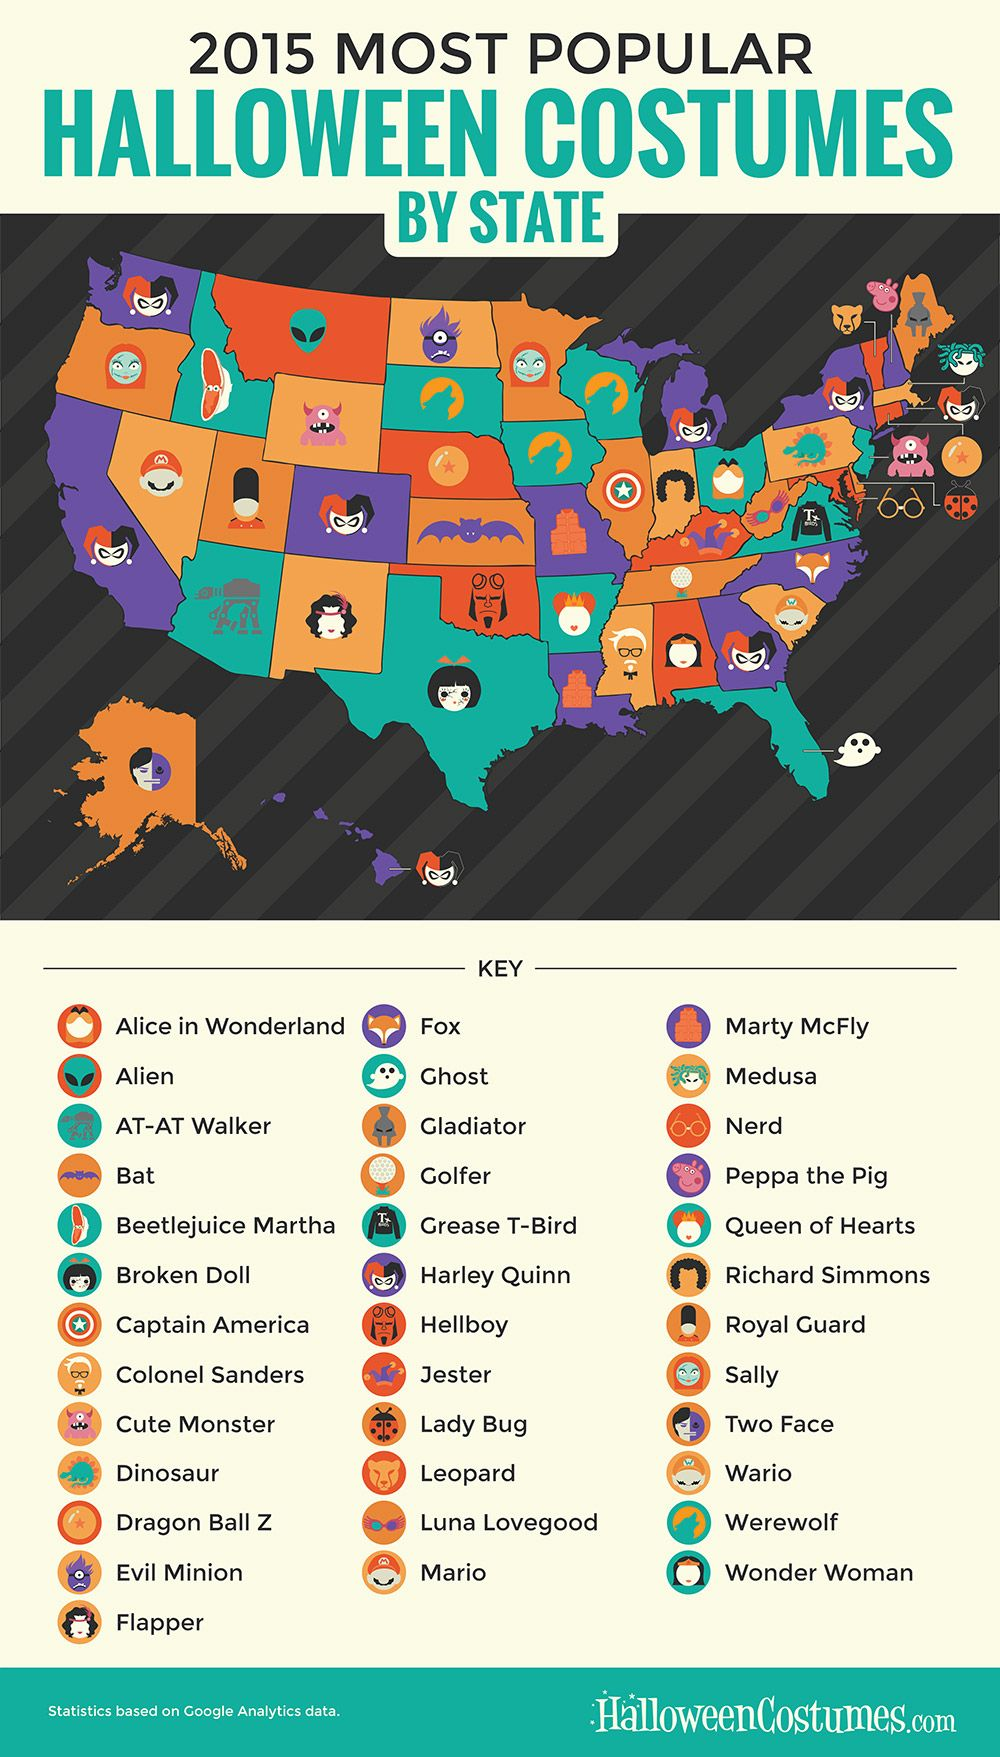 2020 Most Worn Halloween Costume 2015's Most Popular Halloween Costumes by State [Map] in 2020